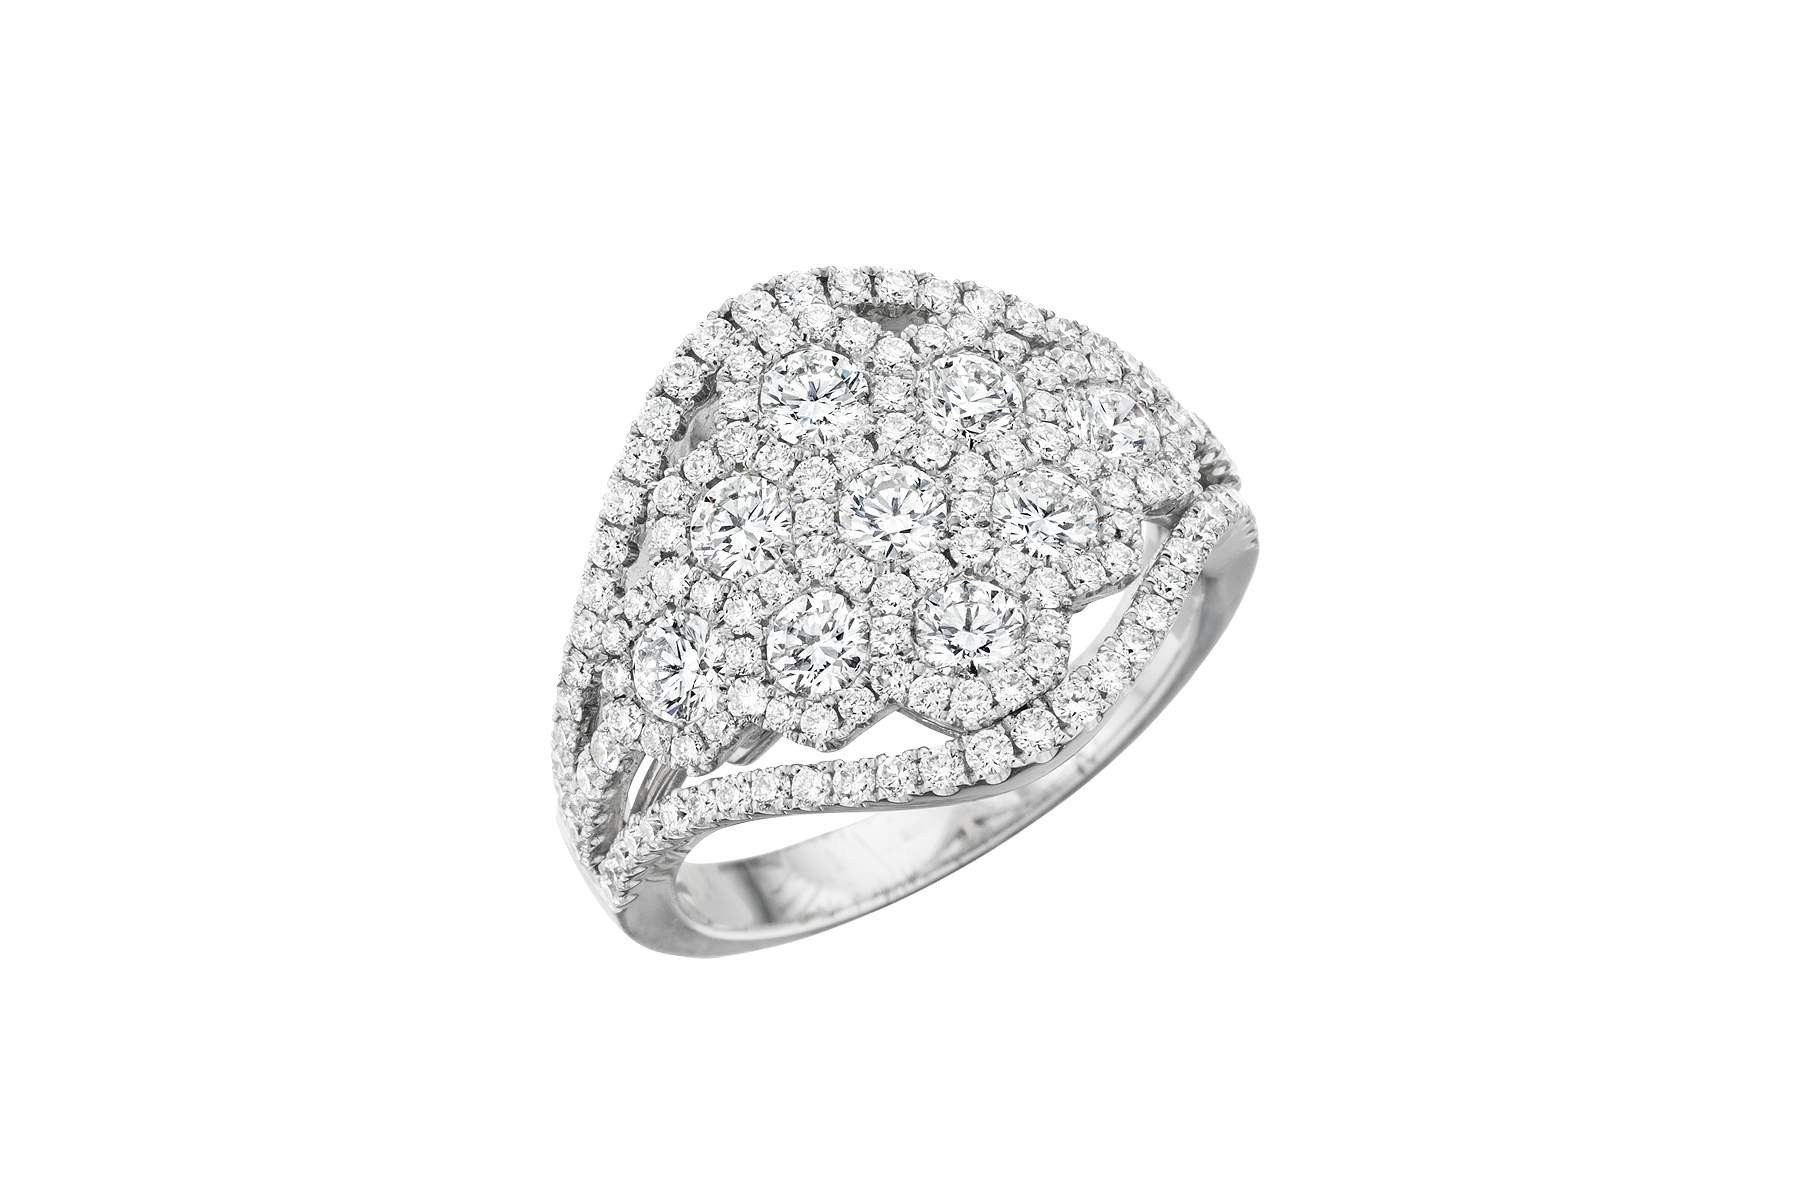 18k White Gold Lady's Diamond Ring